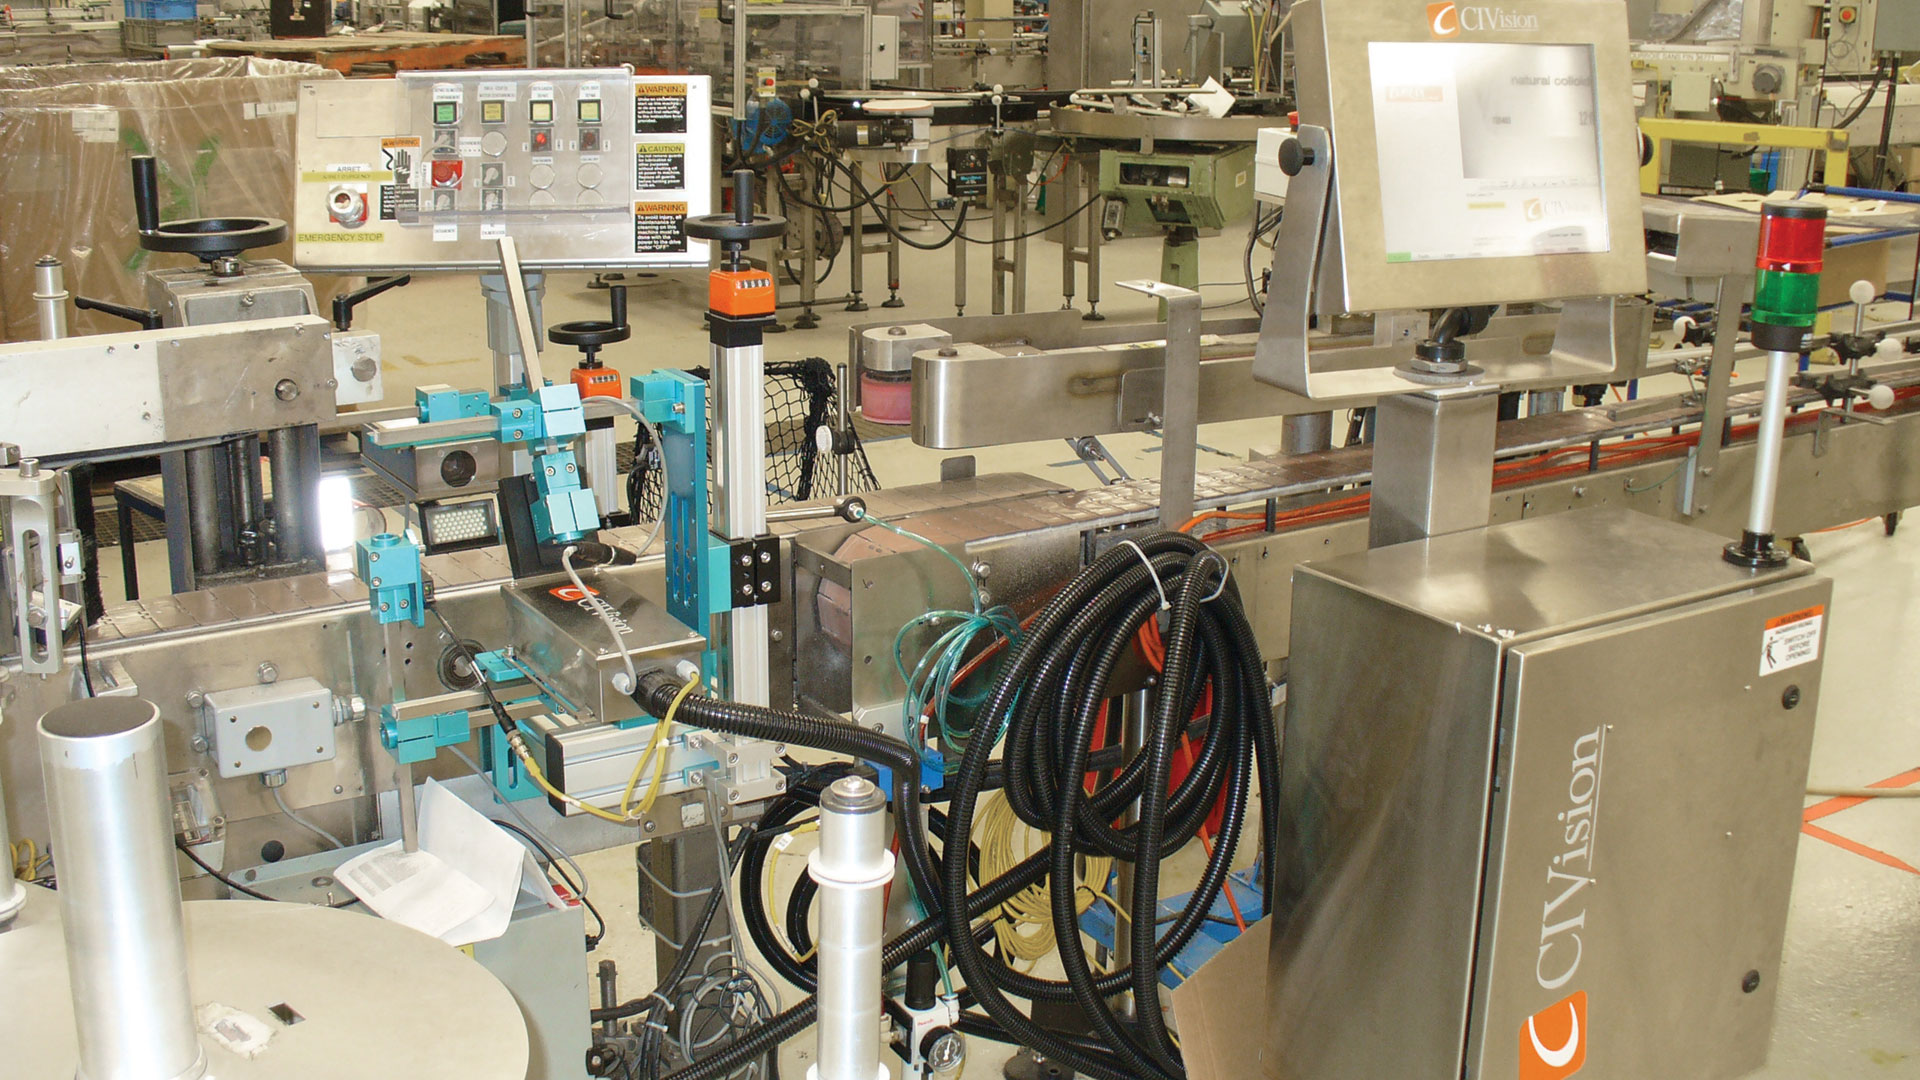 CI Vision's Pro Series label inspection system